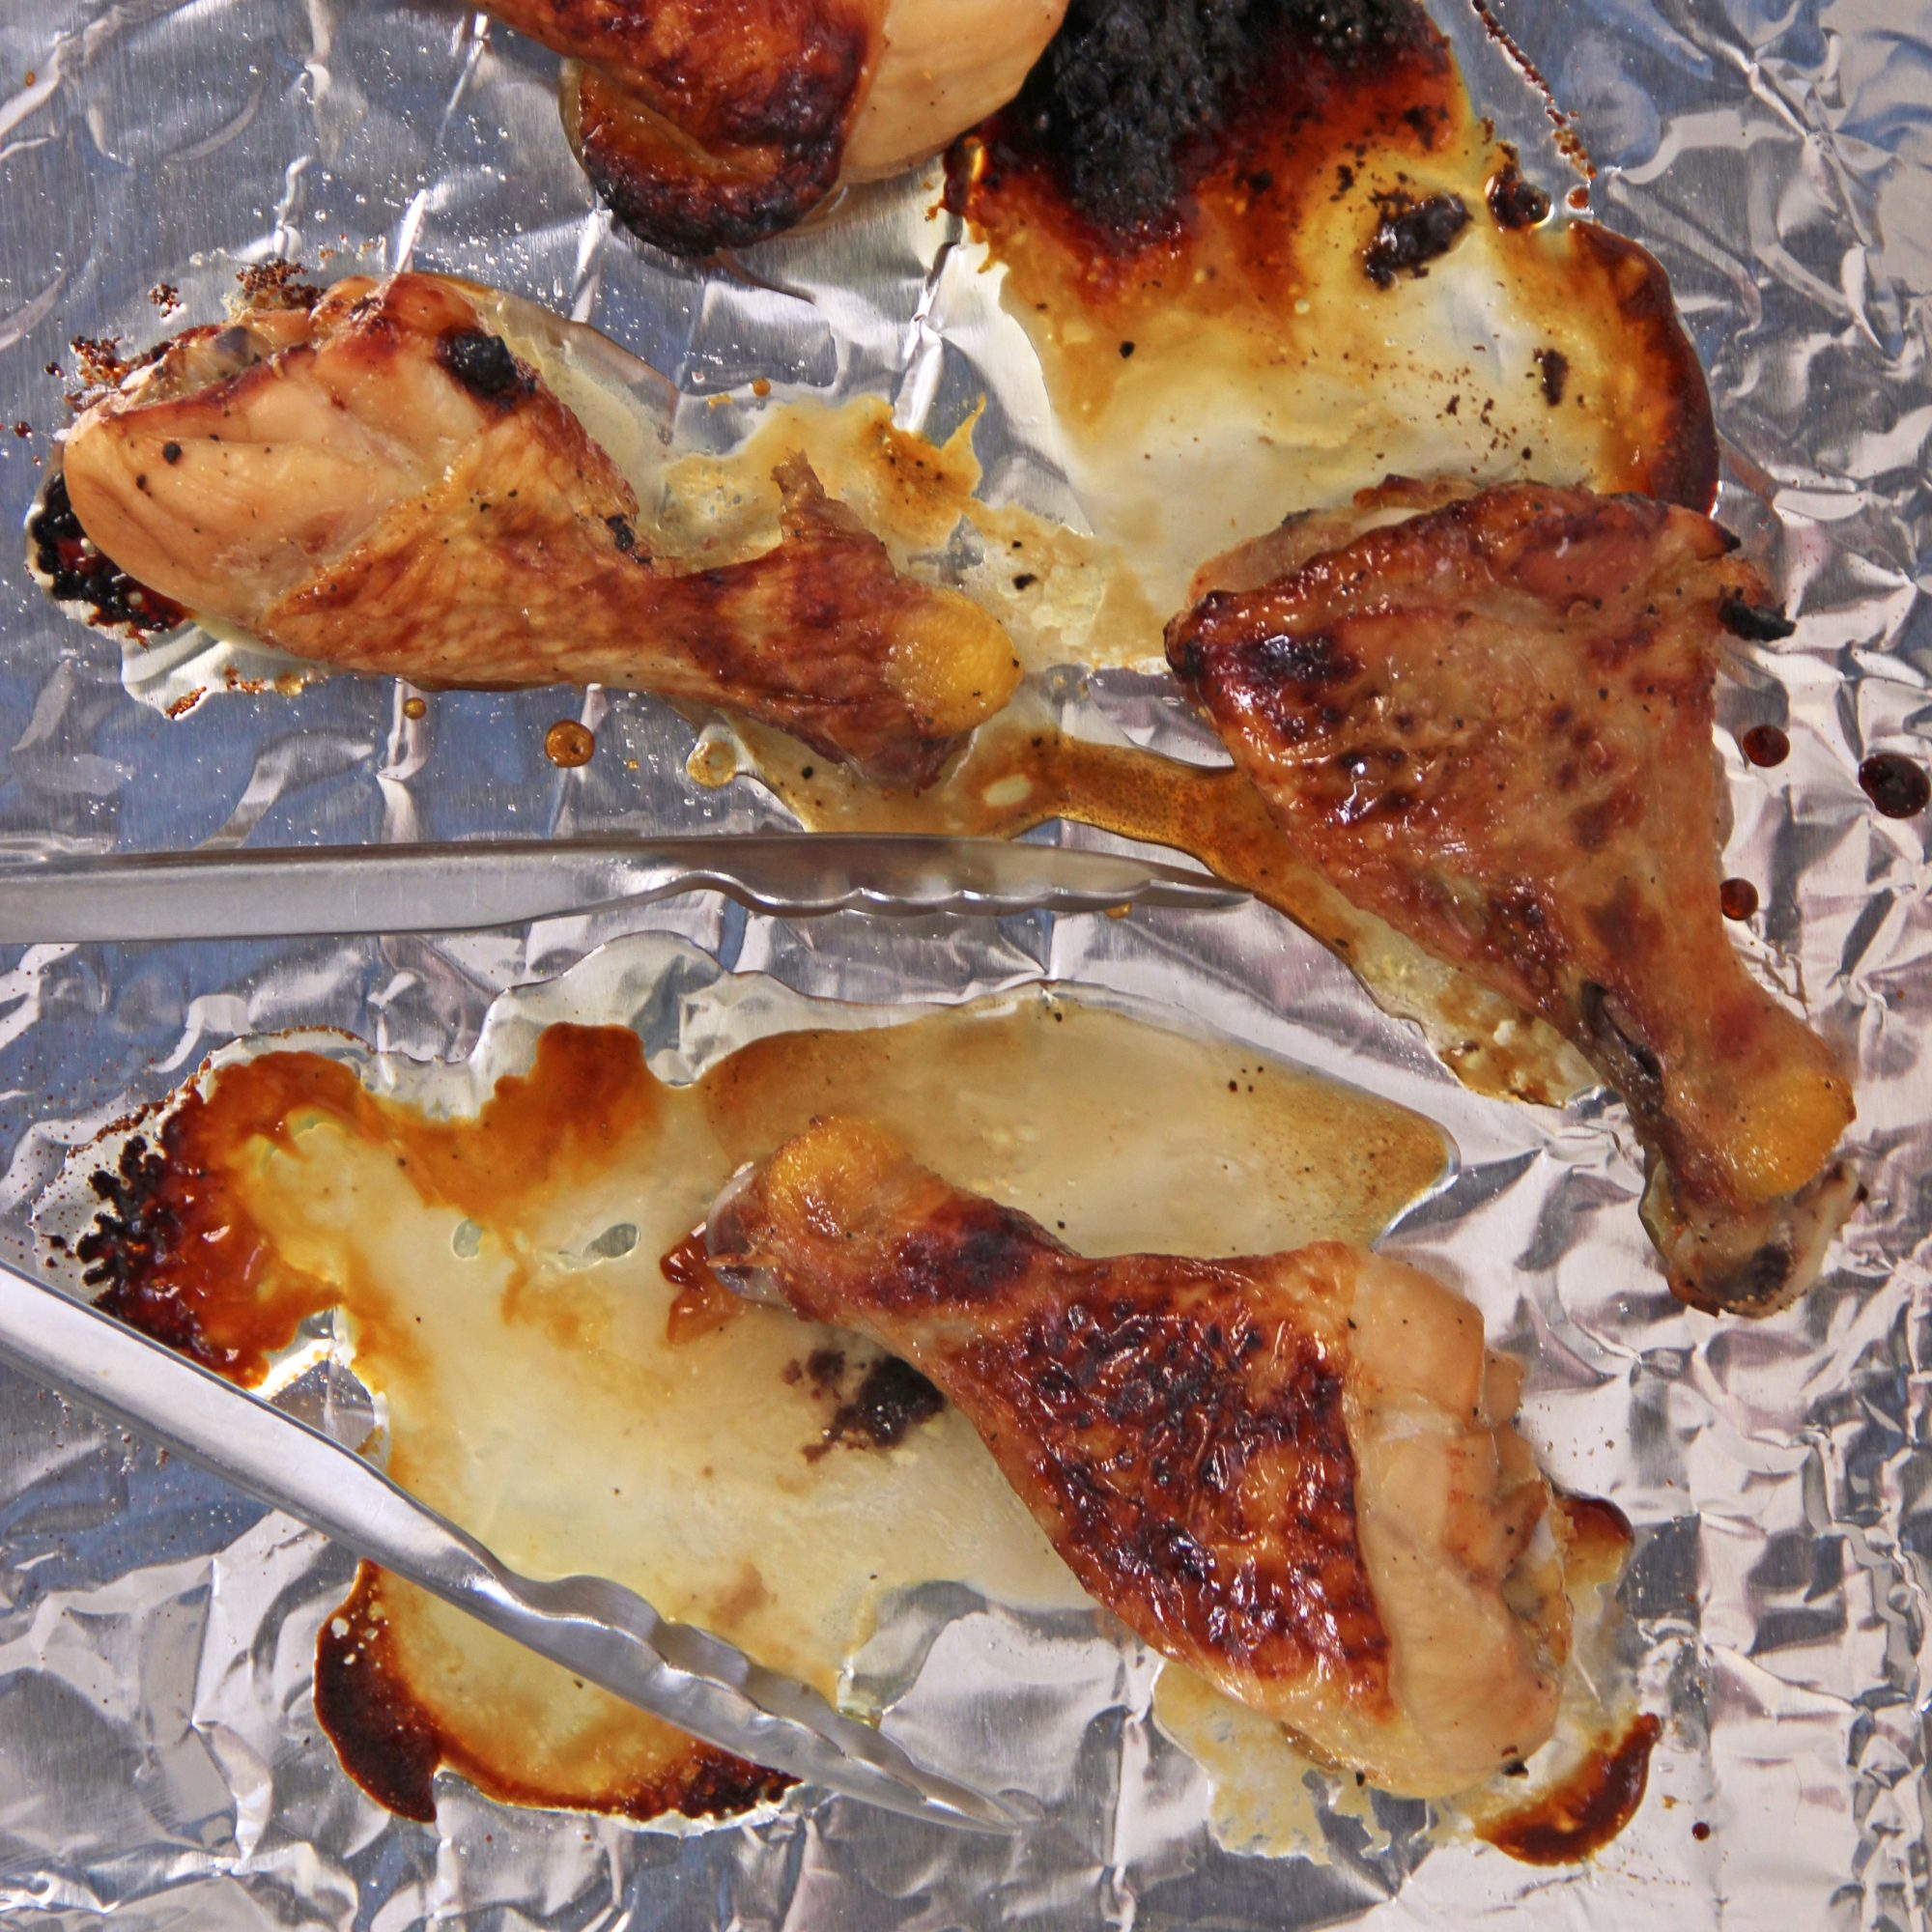 201405-r-honey-lime-glazed-chicken.jpg